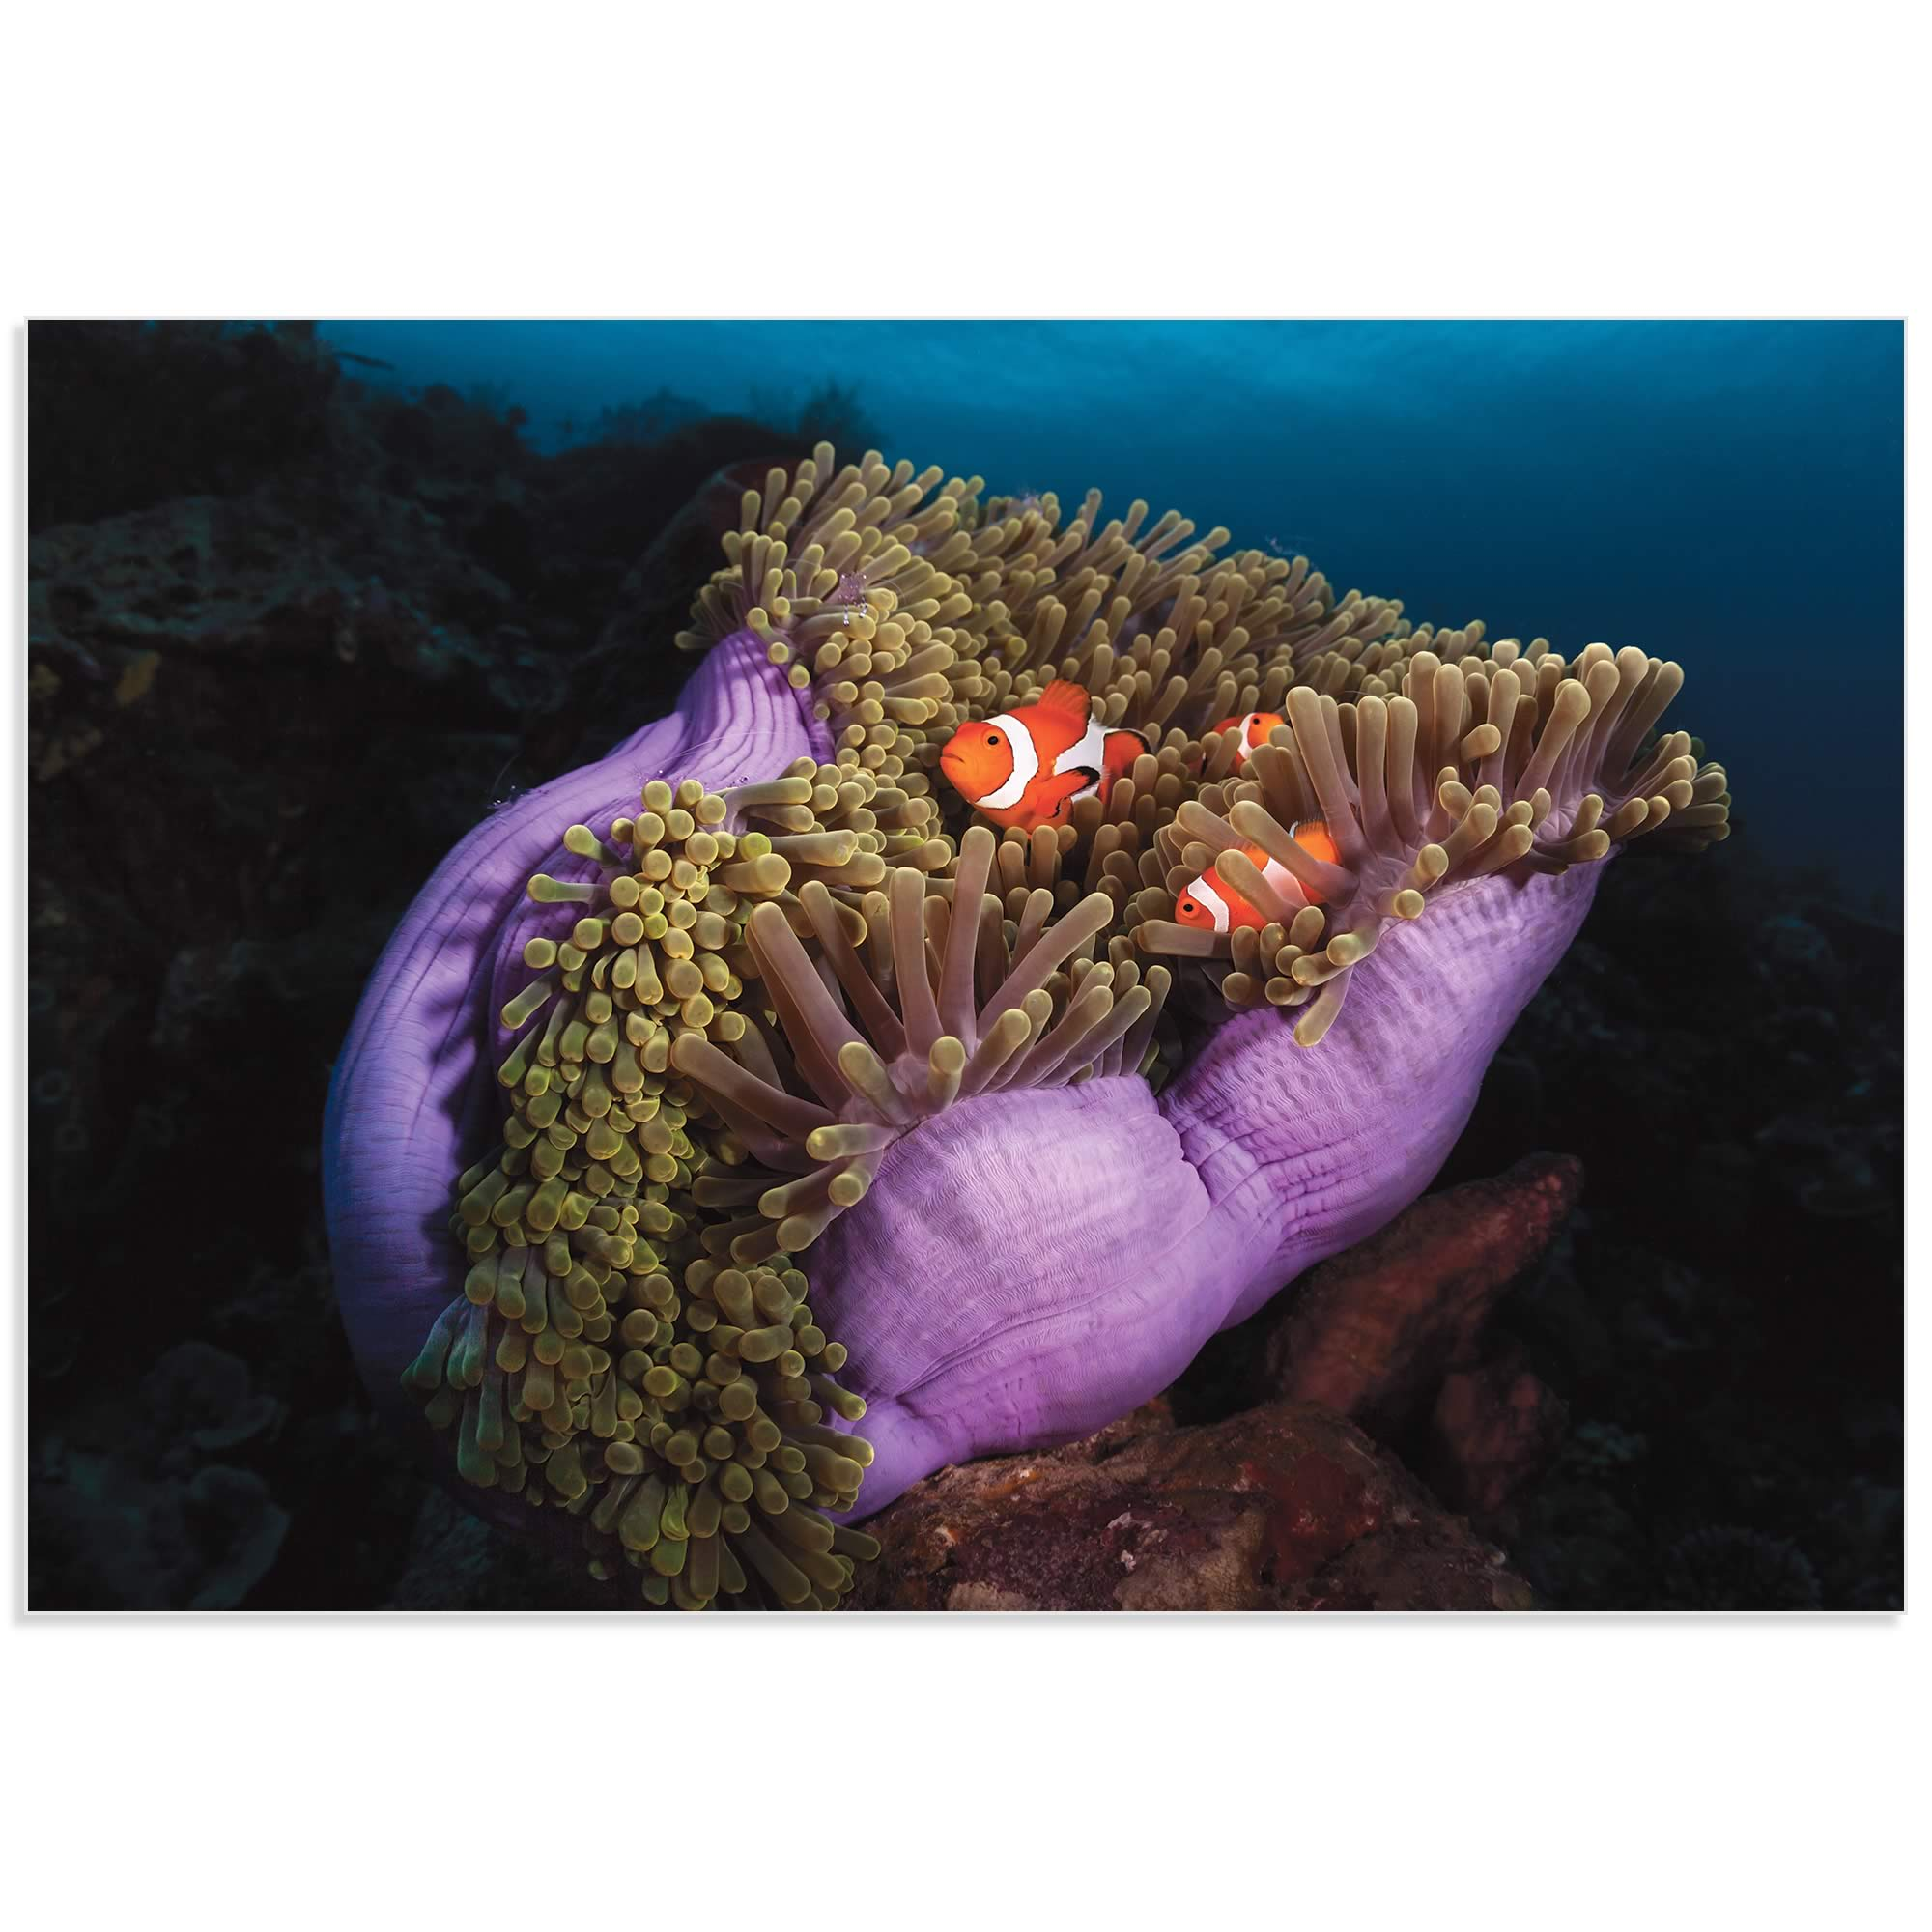 Clown Fish Anemone by Marco Fierli - Coastal Decor on Metal or Acrylic - Alternate View 2